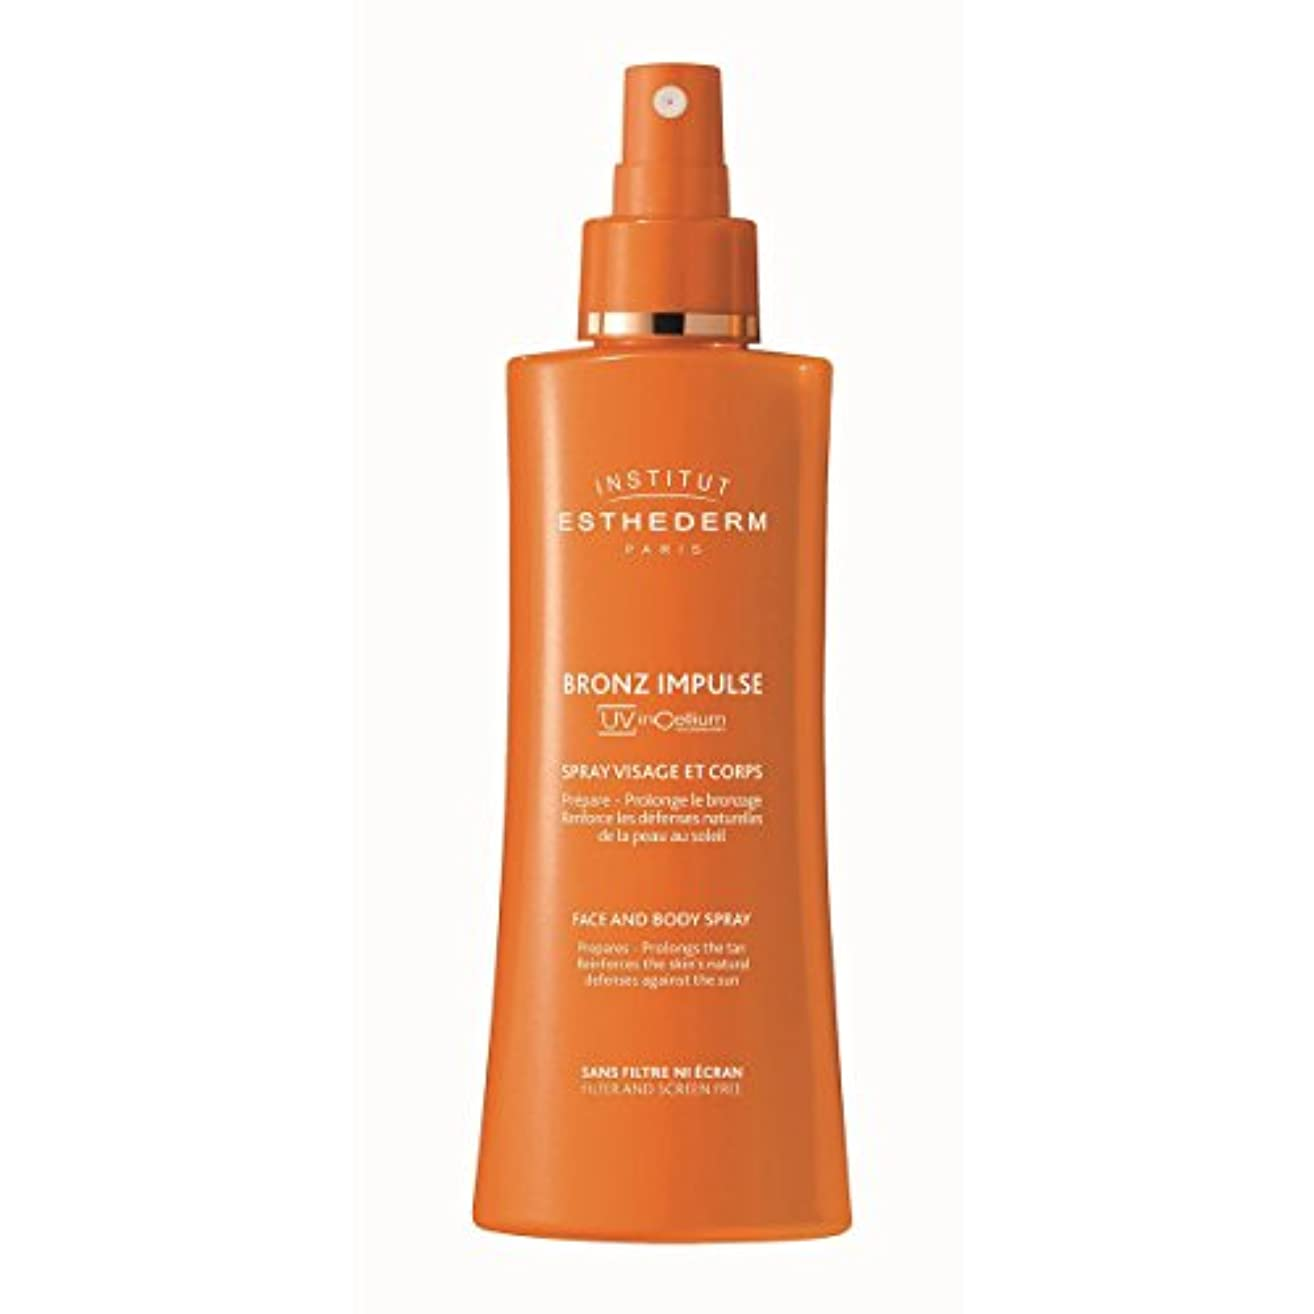 バナナ所得ドラフトInstitut Esthederm Bronz Impulse Face And Body Spray 150ml [並行輸入品]